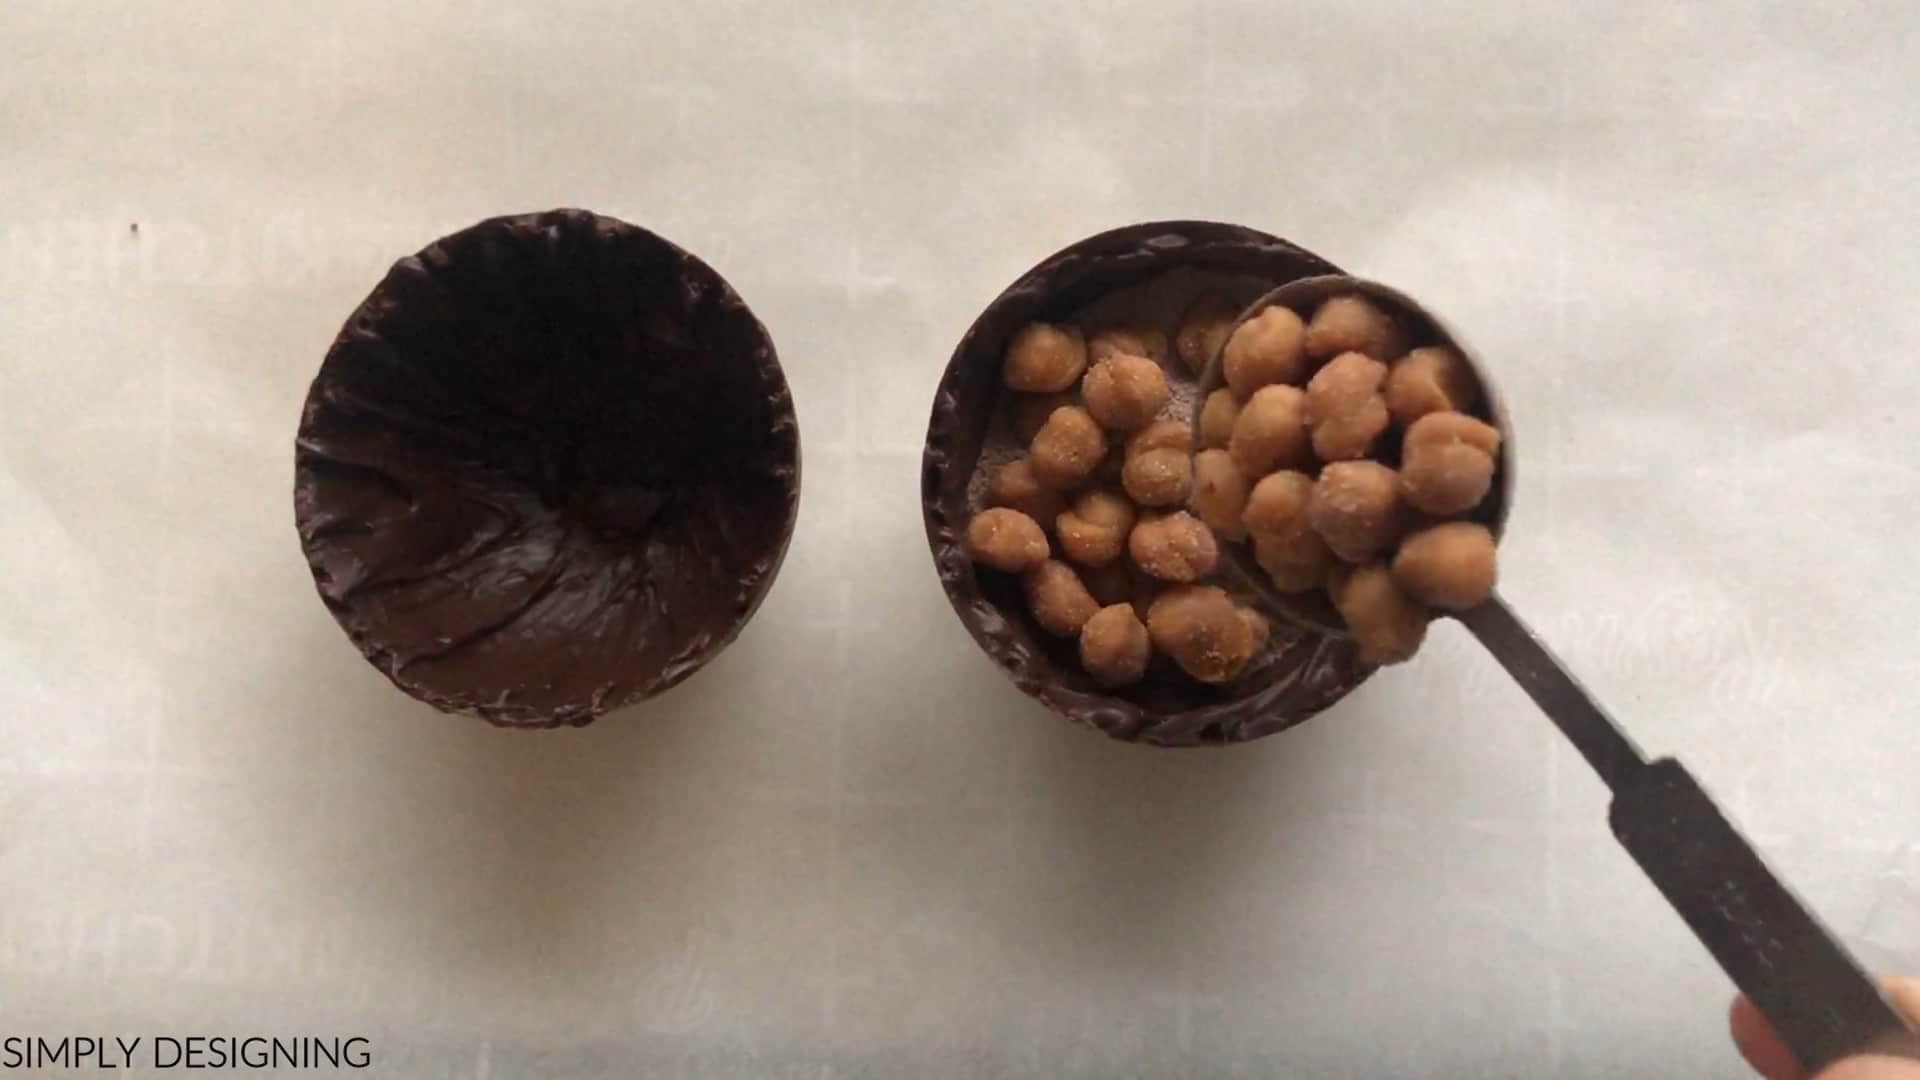 put caramel bits into hollow chocolate spheres for caramel hot chocolate bombs